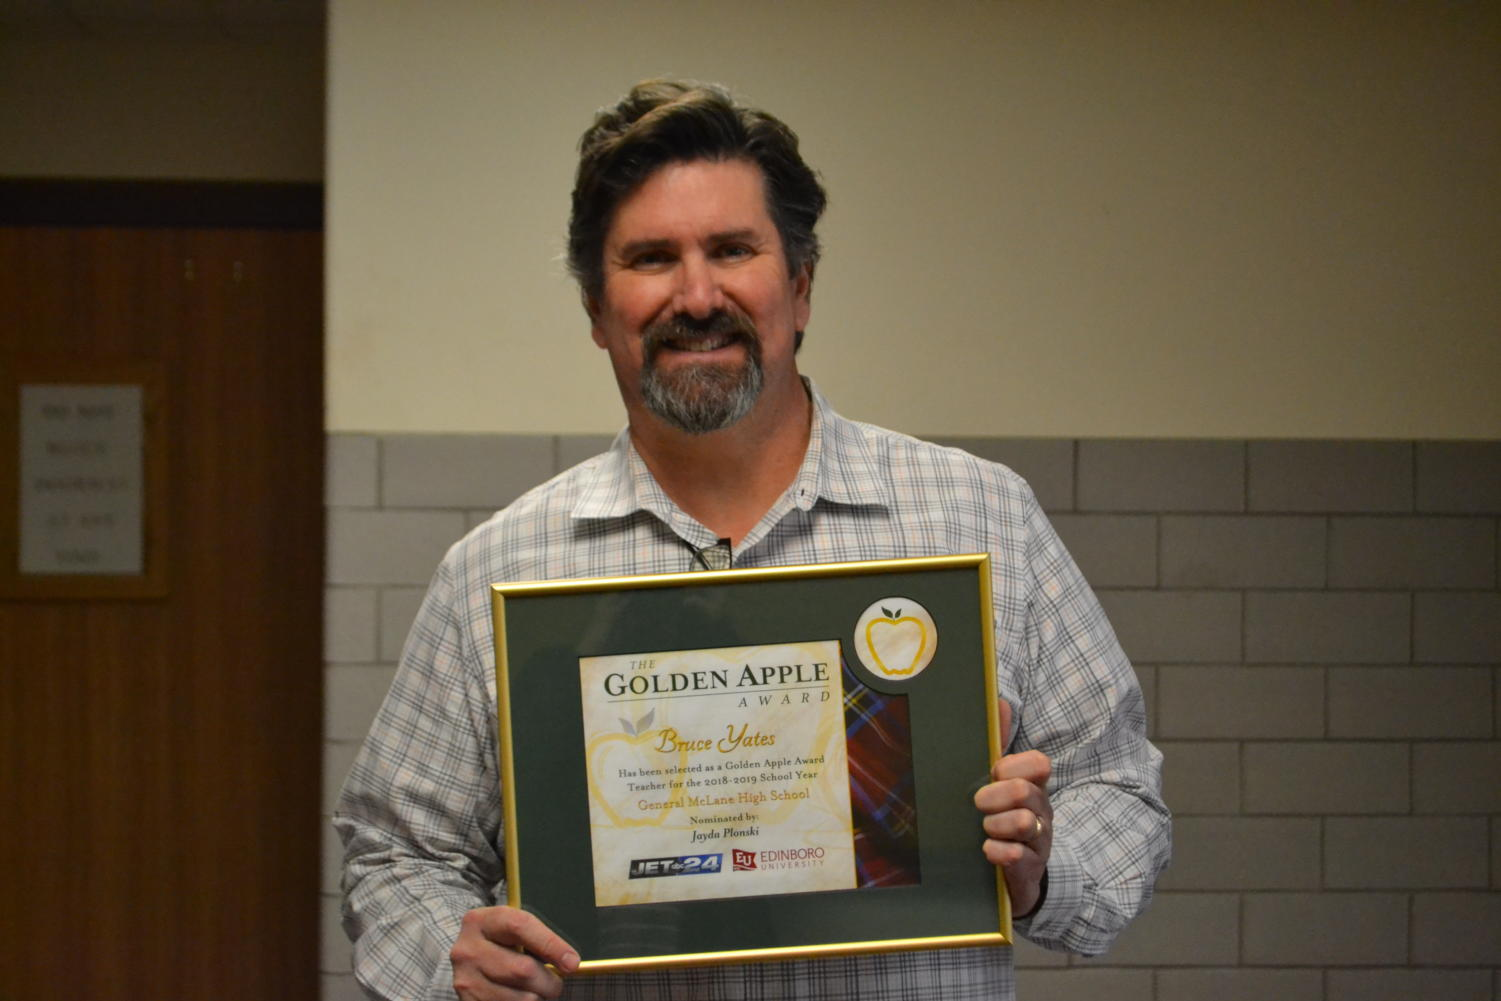 Mr. Yates and his Golden Apple Award